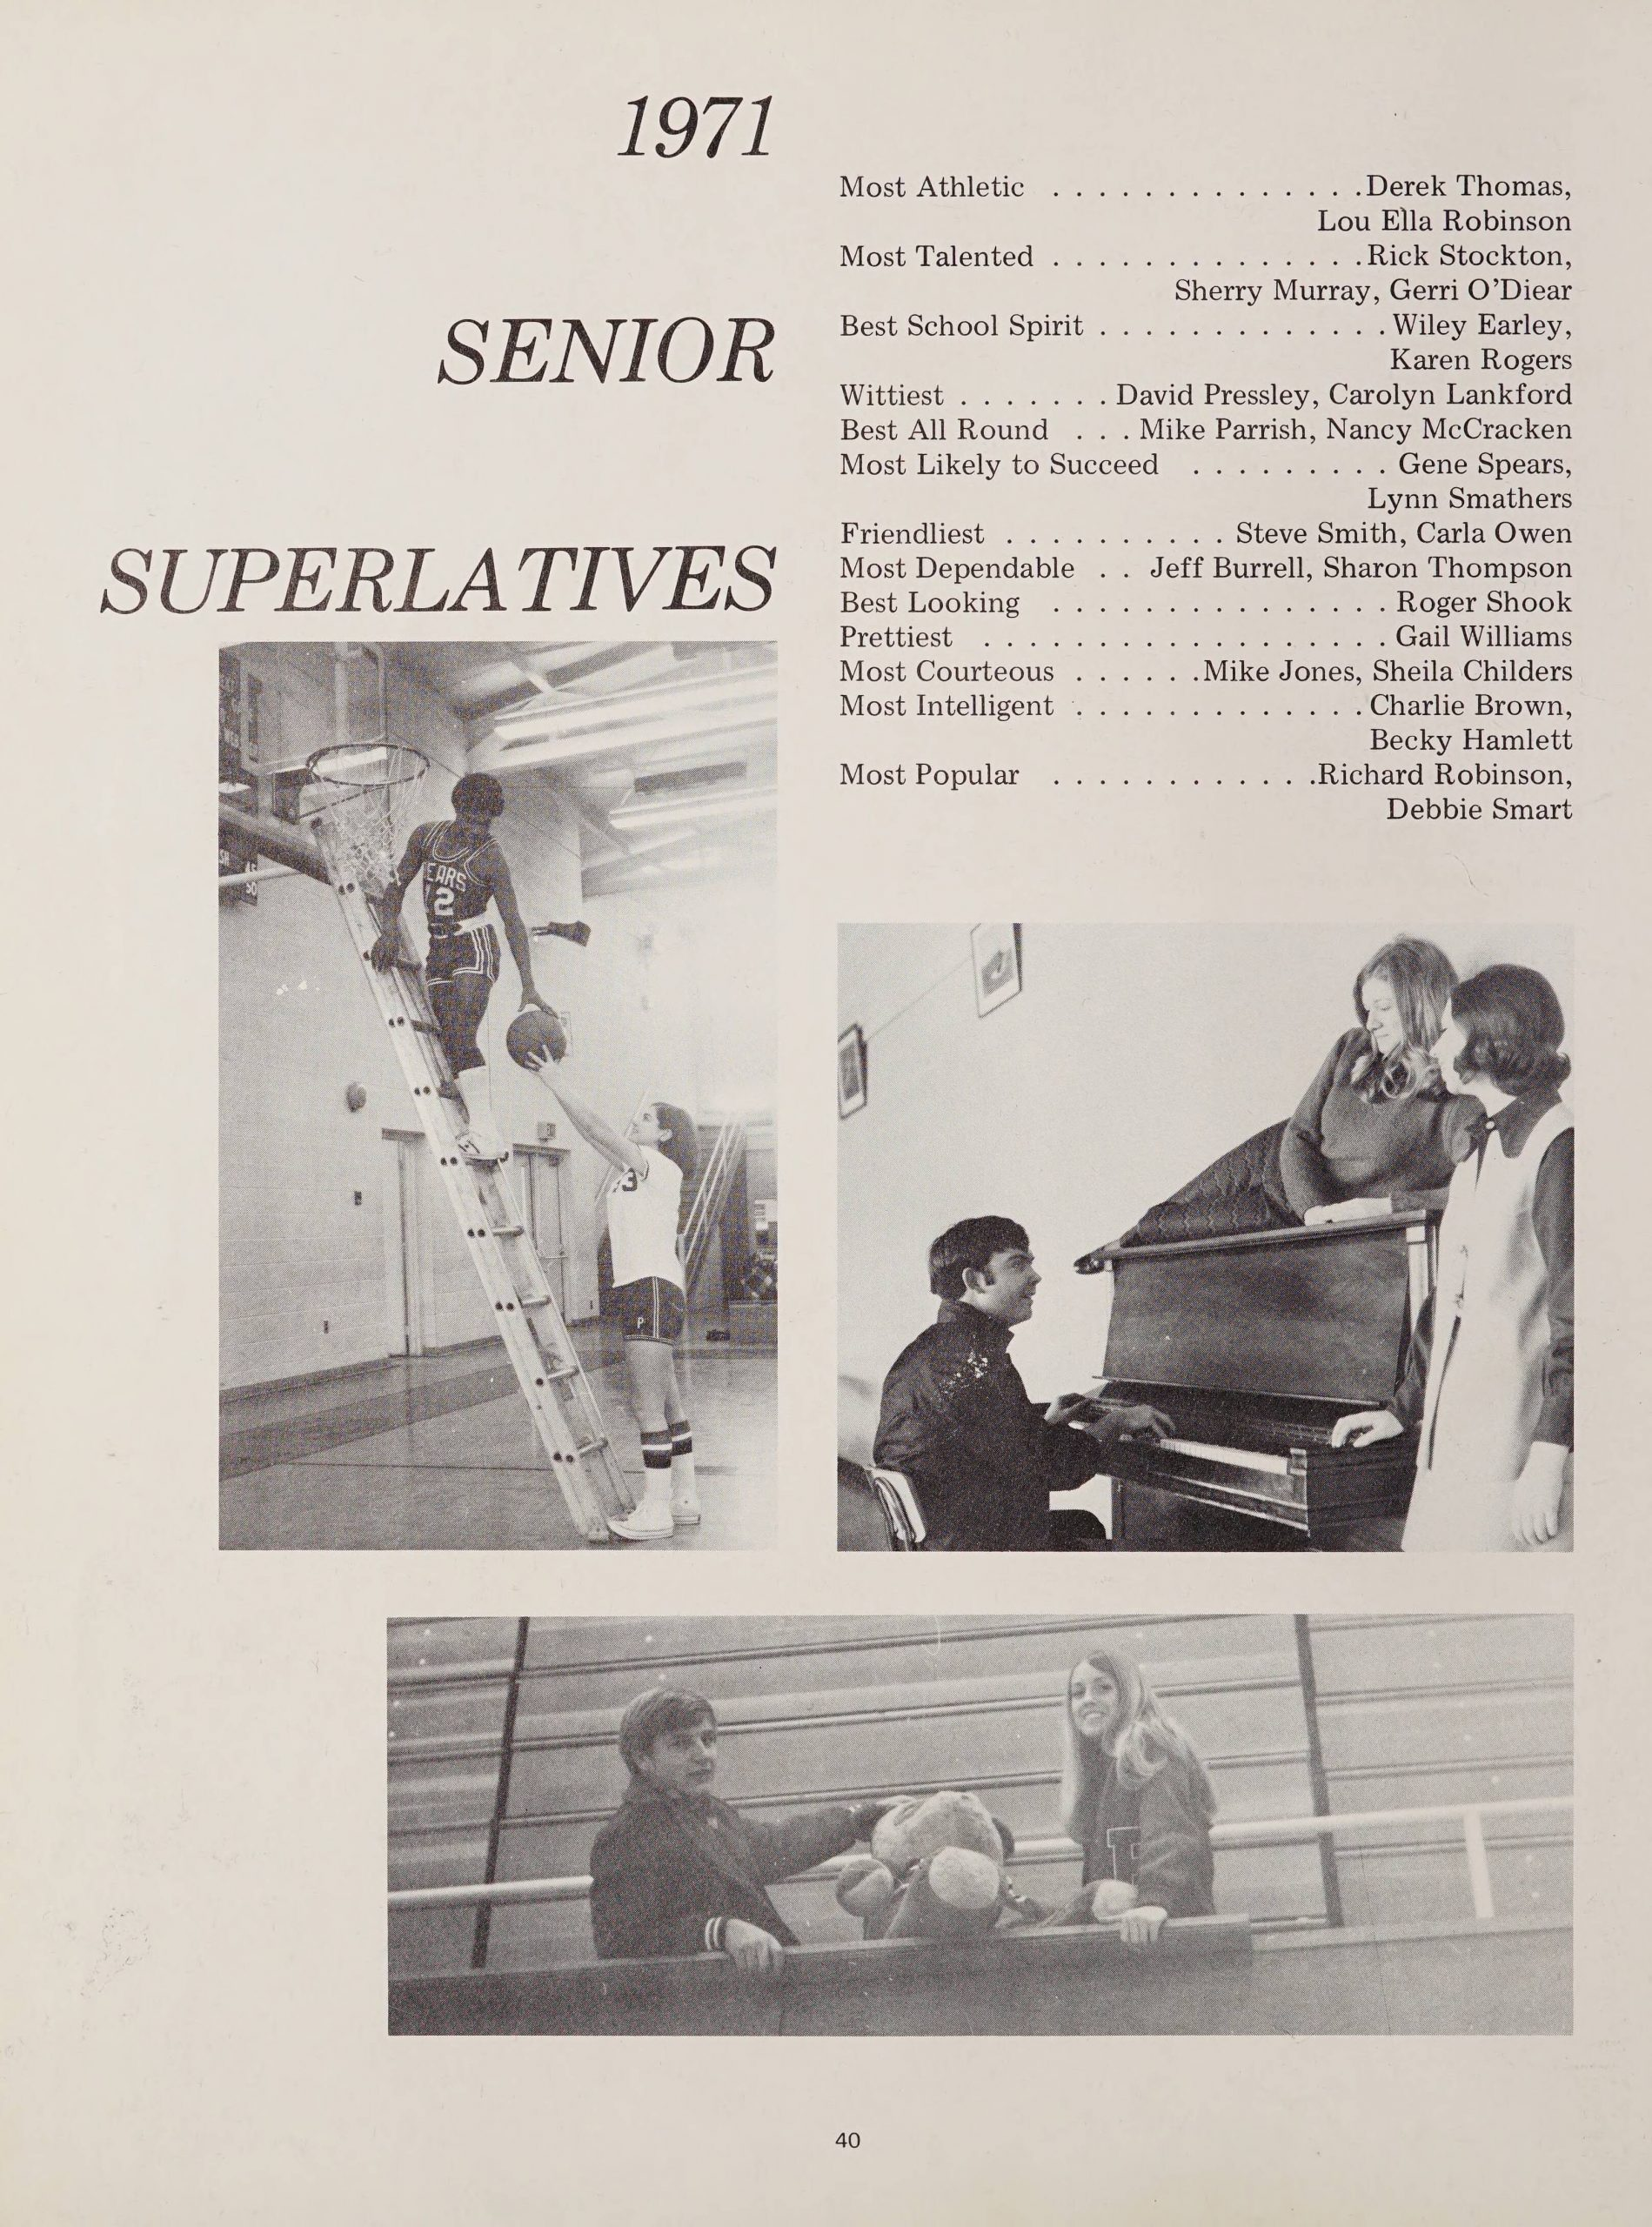 1971 Senior Superlatives for: most athletic, most talented, wittiest, best all round, most likely to succeed, friendliest, most dependable, best looking, prettiest, most courteous, most intelligent, and most popular. Included are three pictures of students in areas around the school including the gym and music room.